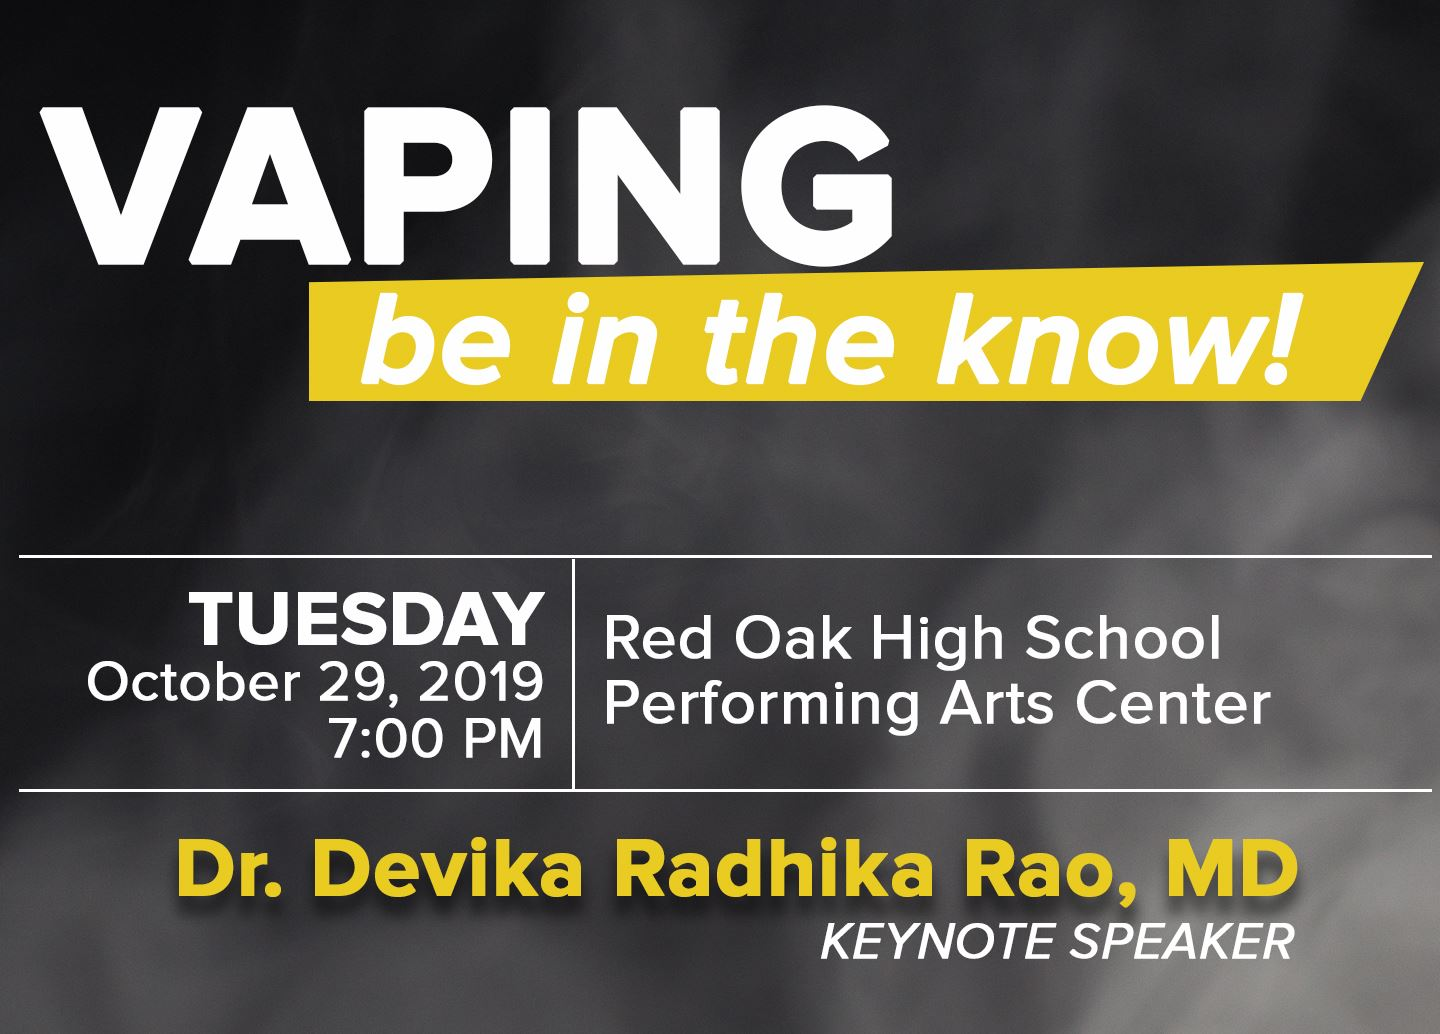 Vaping-Be in the Know on Oct. 29 at 7 PM in ROHS Performing Artc Center. Keynote speaker: Dr. Rao